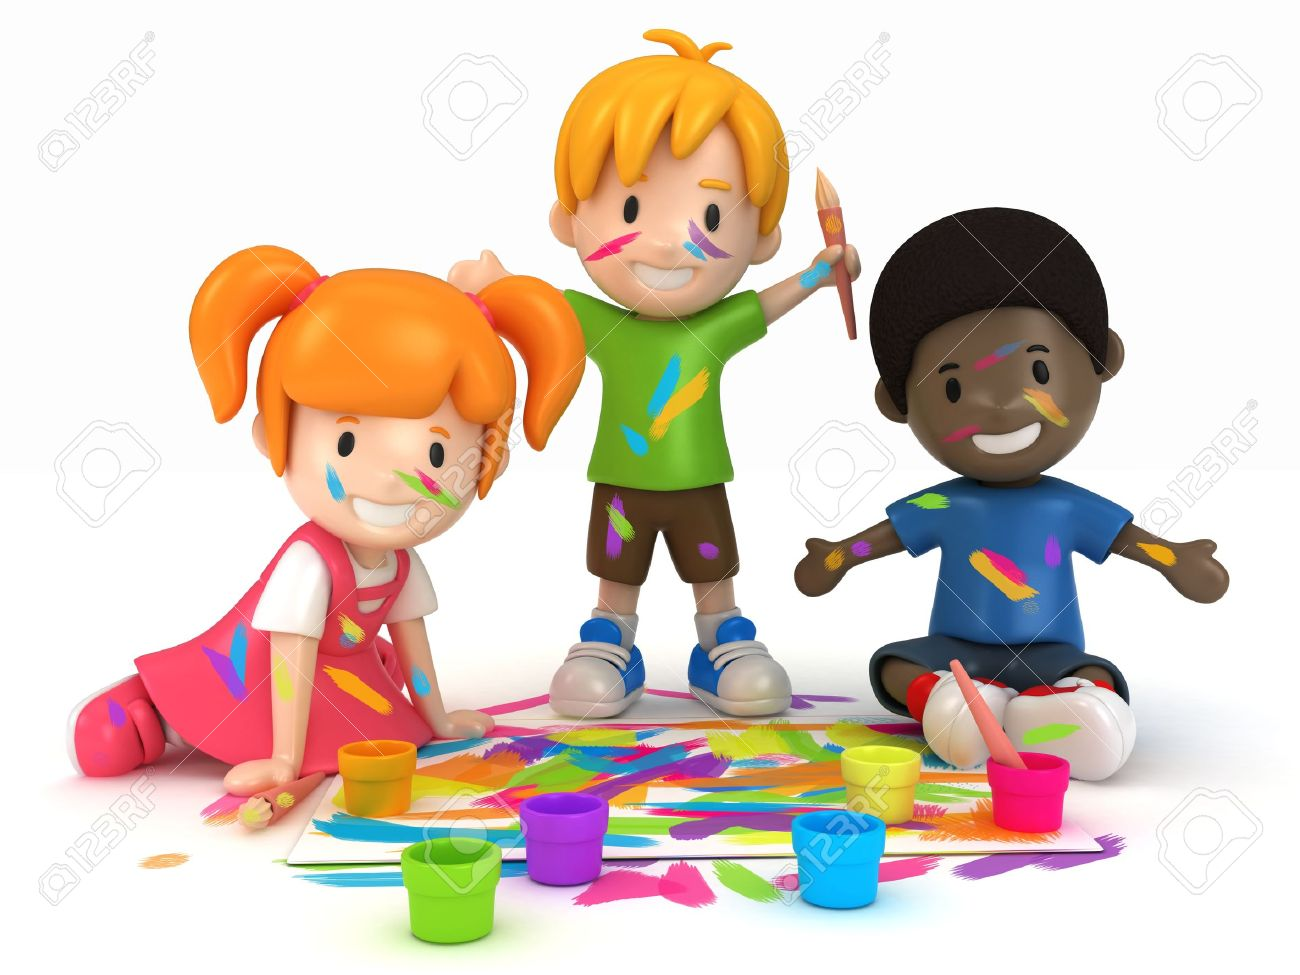 3D Render Of Kids Painting Stock Photo, Picture And Royalty Free ...